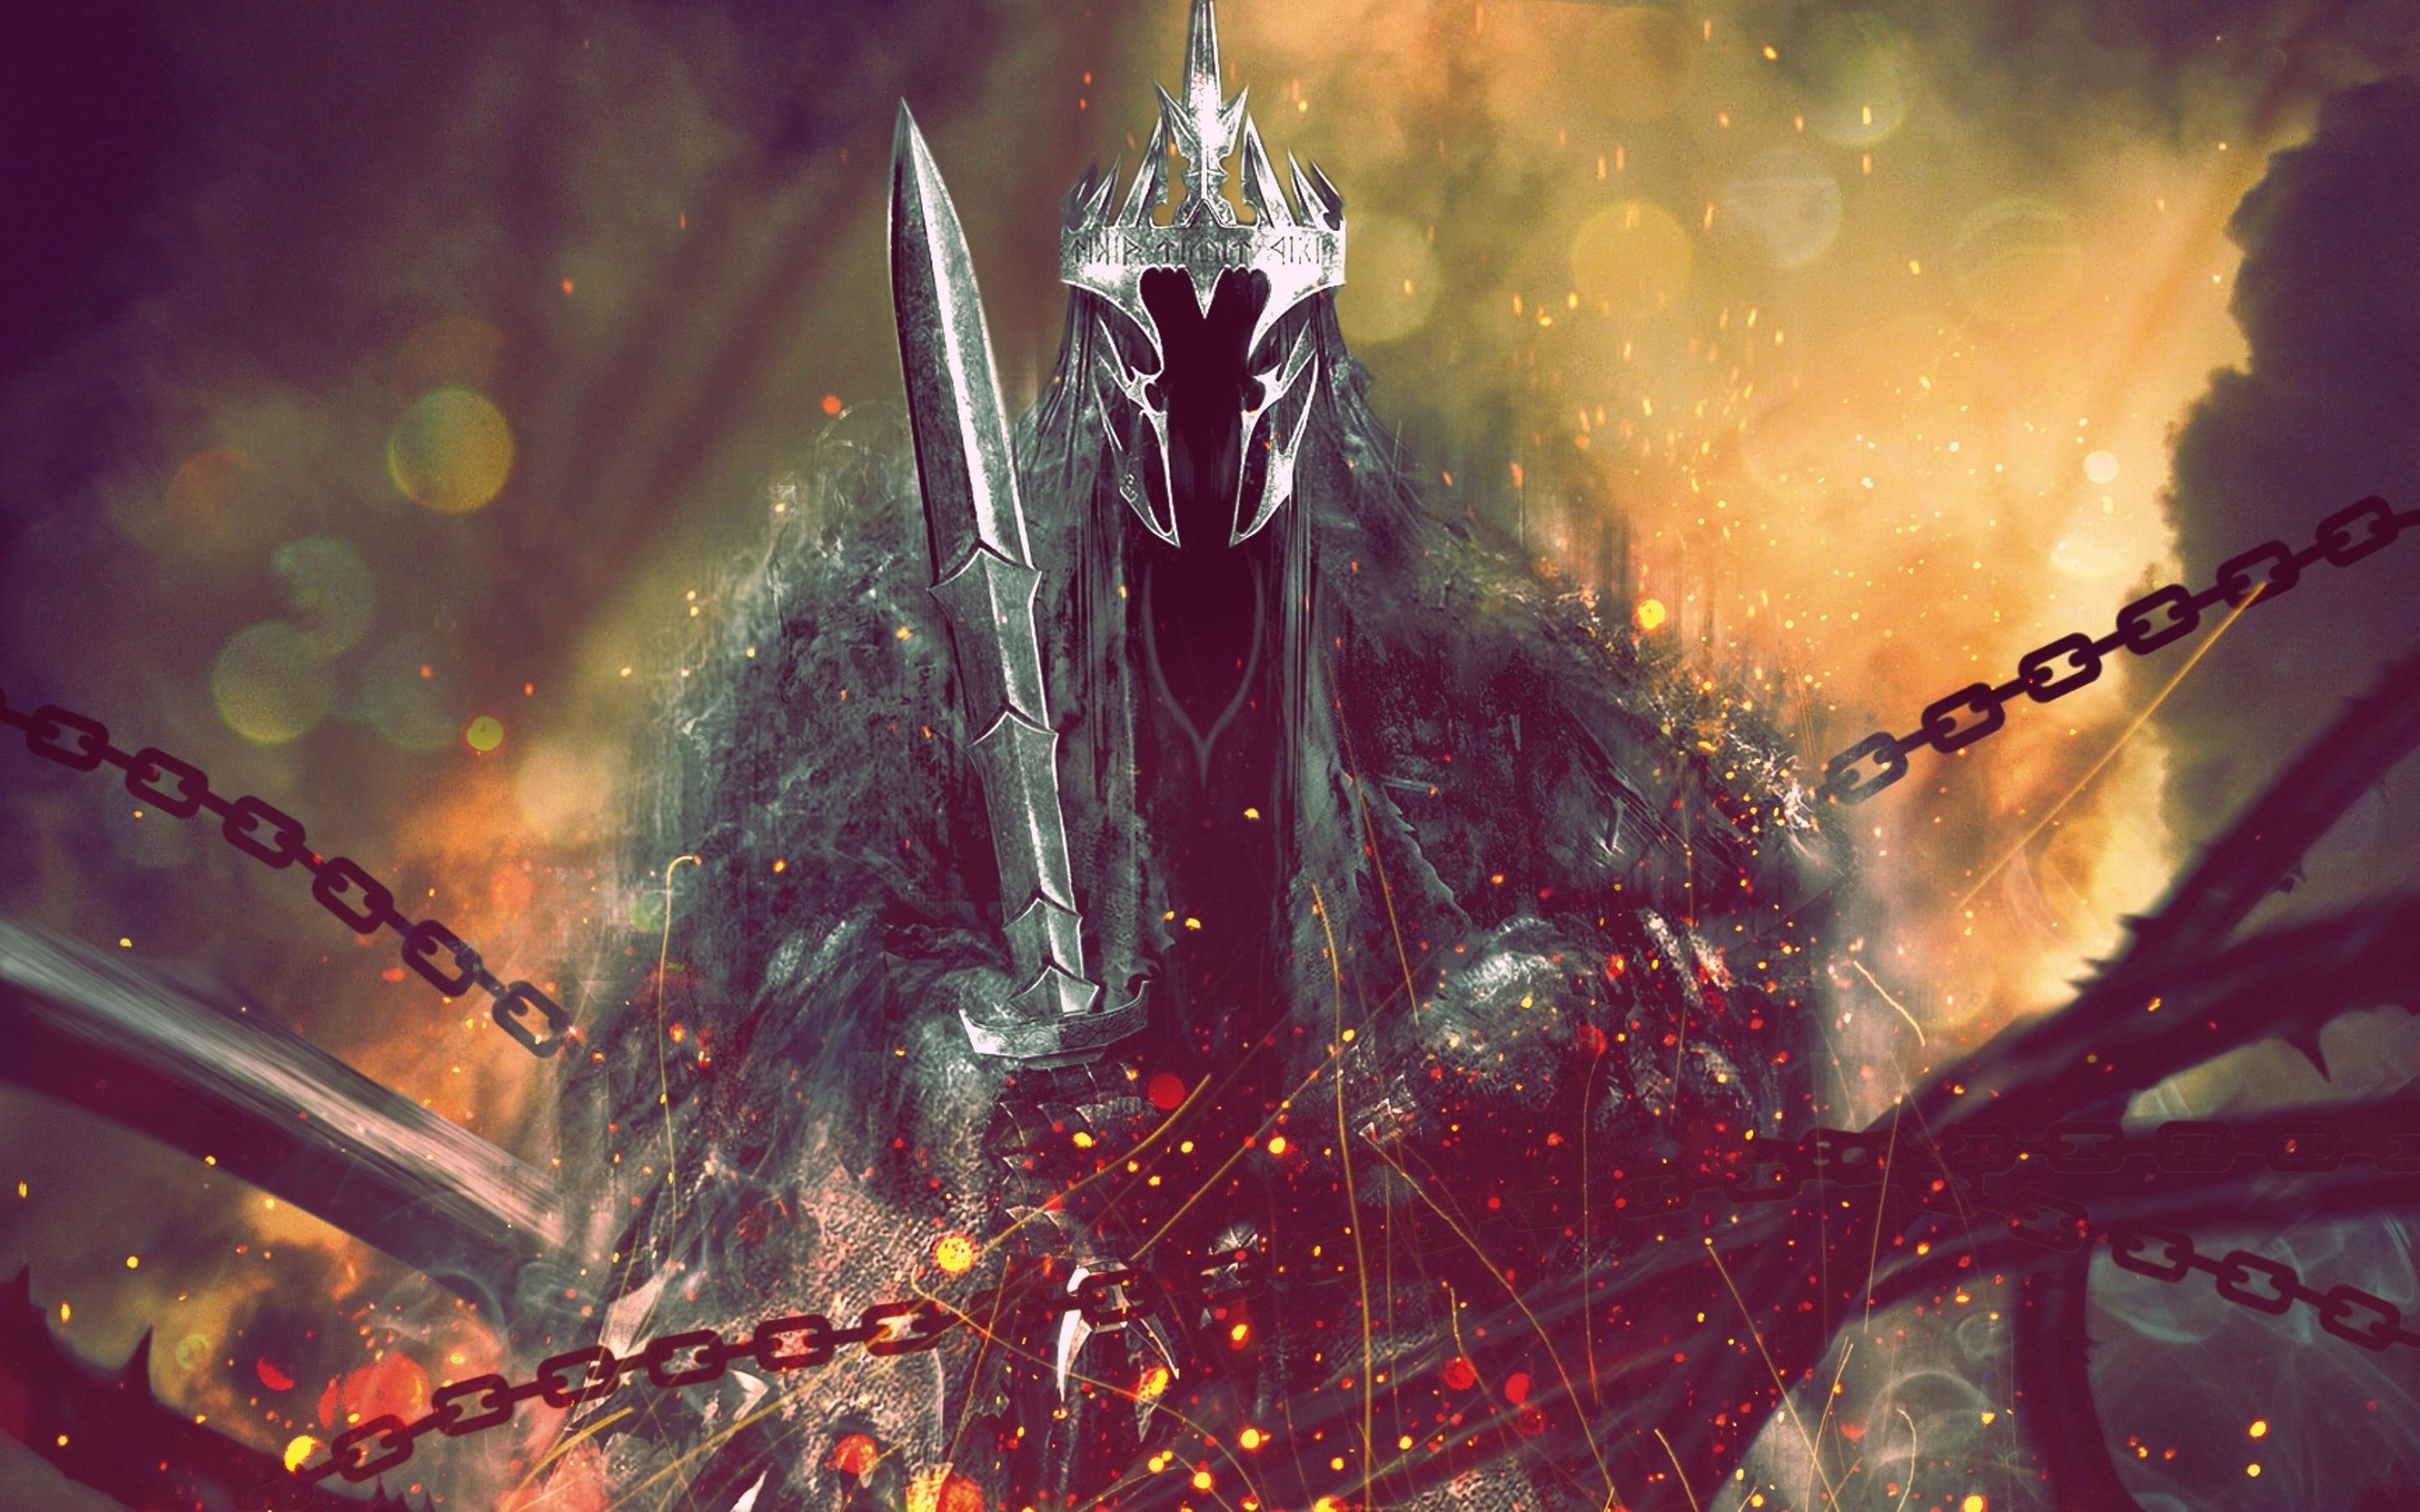 Cute Anime Dogs Wallpaper Nazgul From The Lord Of The Rings Wallpaper Download 2880x1800